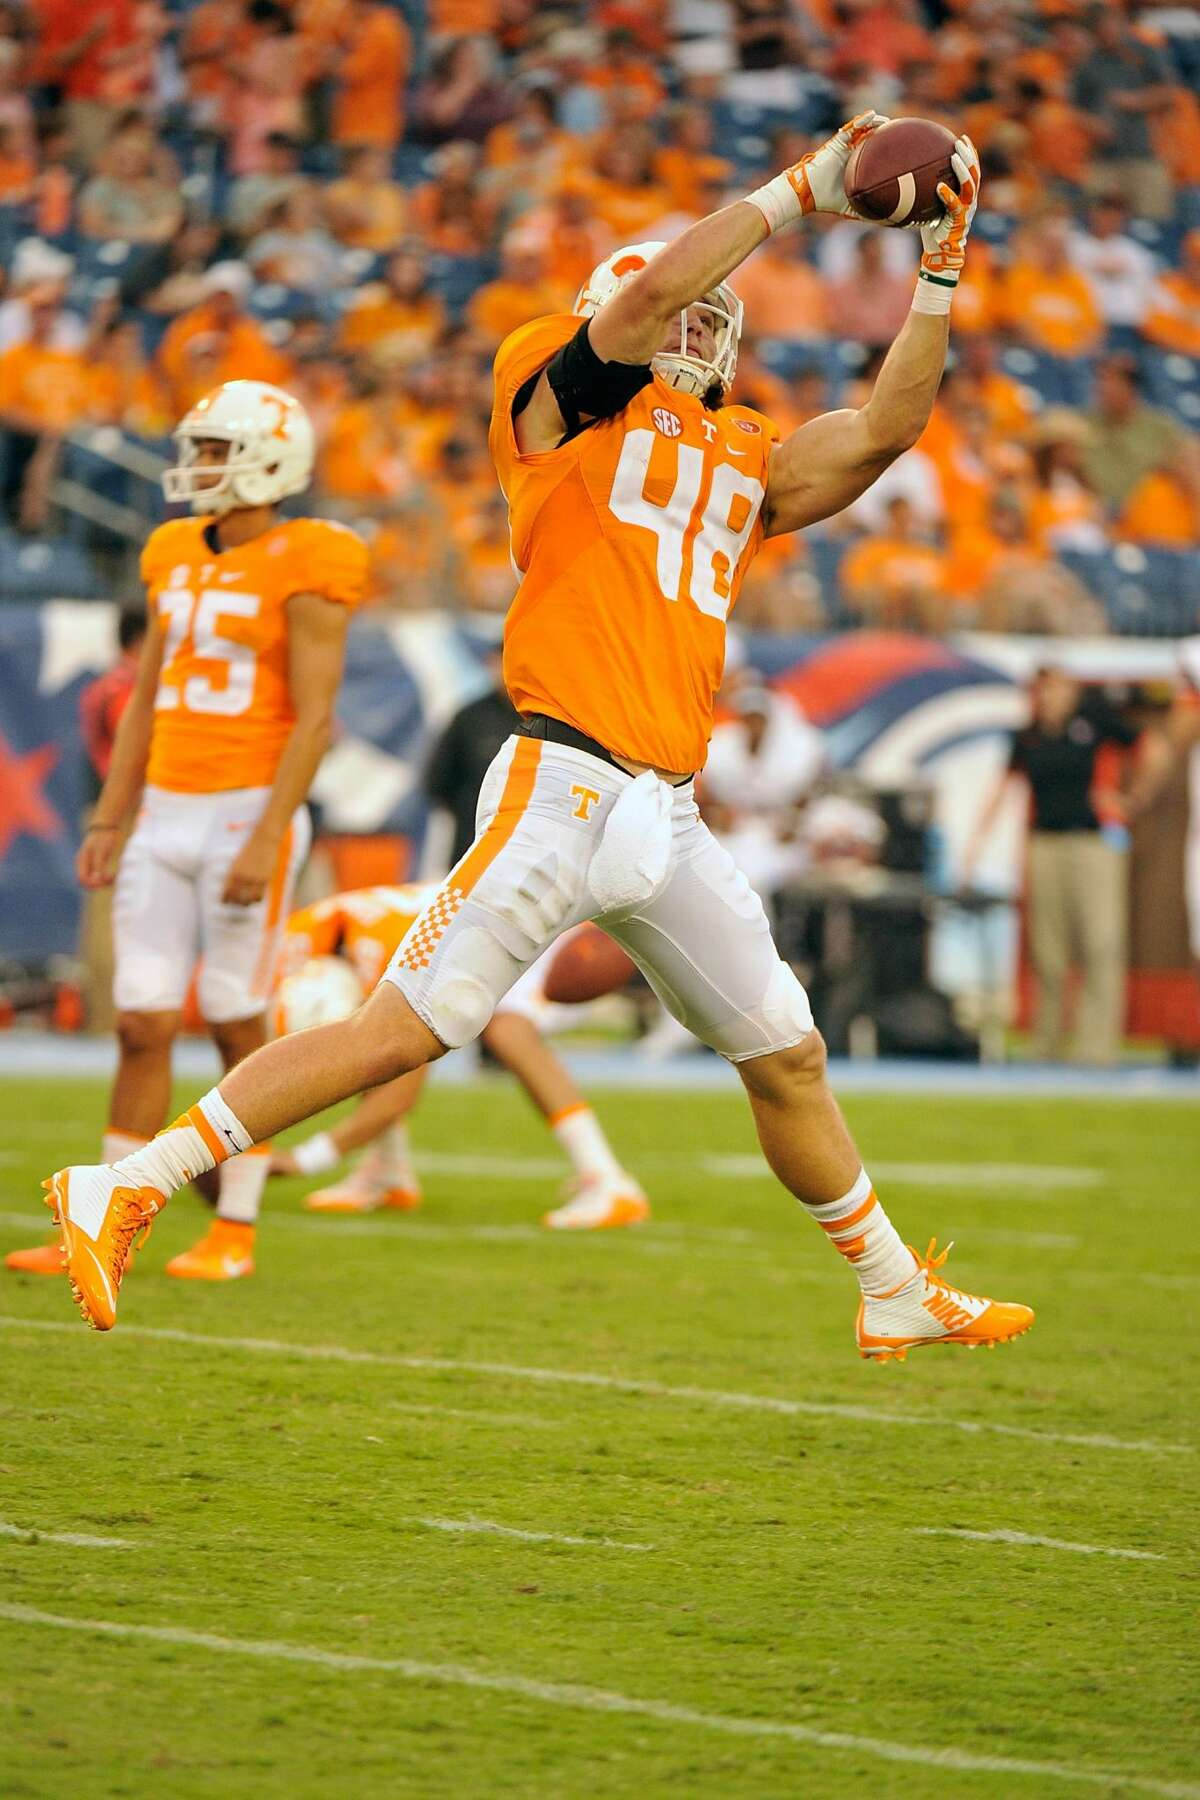 NASHVILLE, TN - SEPTEMBER 05: Alex Ellis #48 of the Tennessee Volunteers warms up prior to a game against the Bowling Green Falcons at Nissan Stadium on September 5, 2015 in Nashville, Tennessee. (Photo by Frederick Breedon/Getty Images)